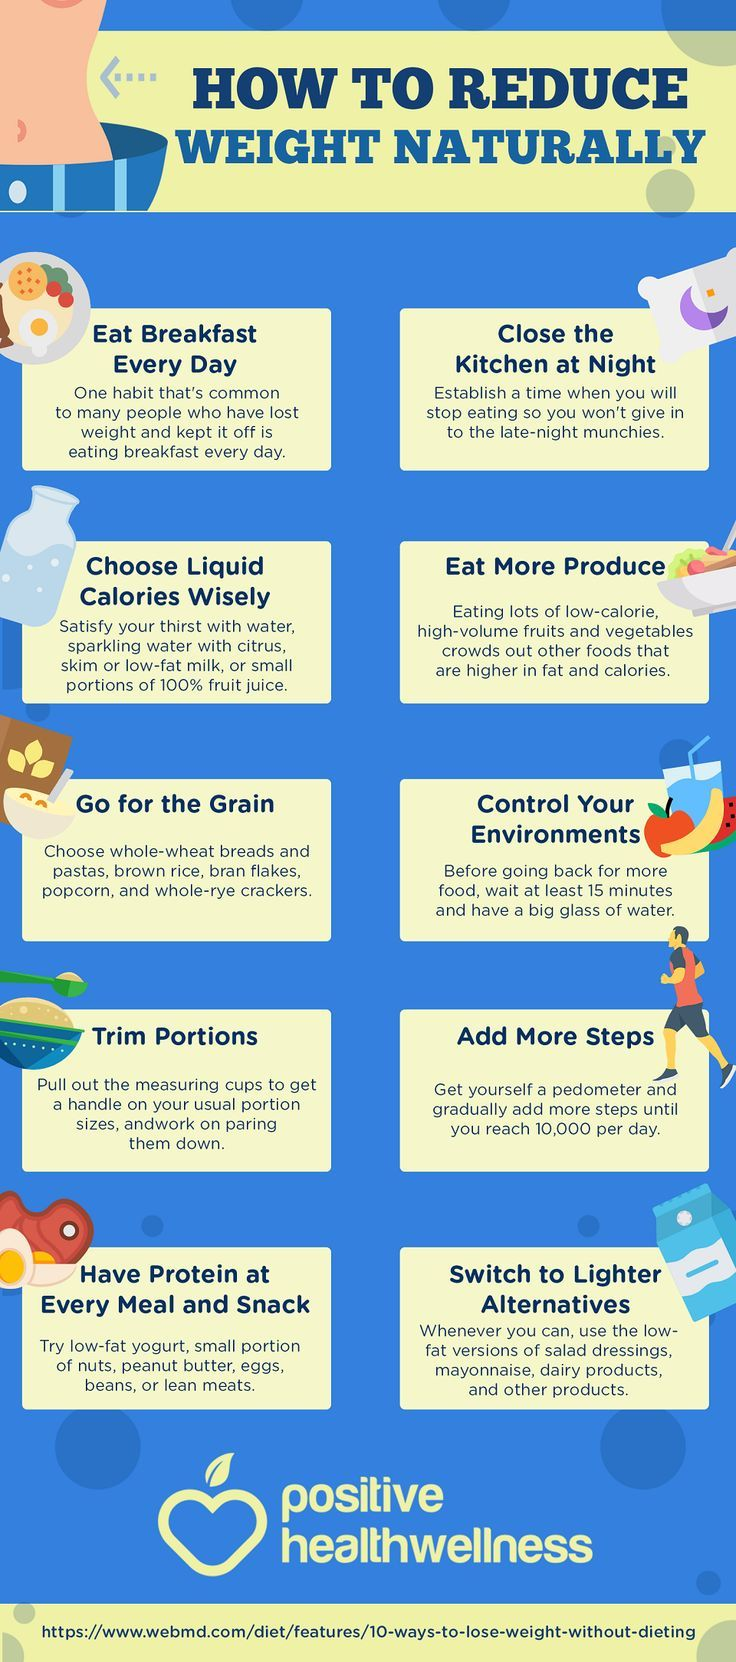 How to Reduce Weight Naturally – Positive Health Wellness Infographic